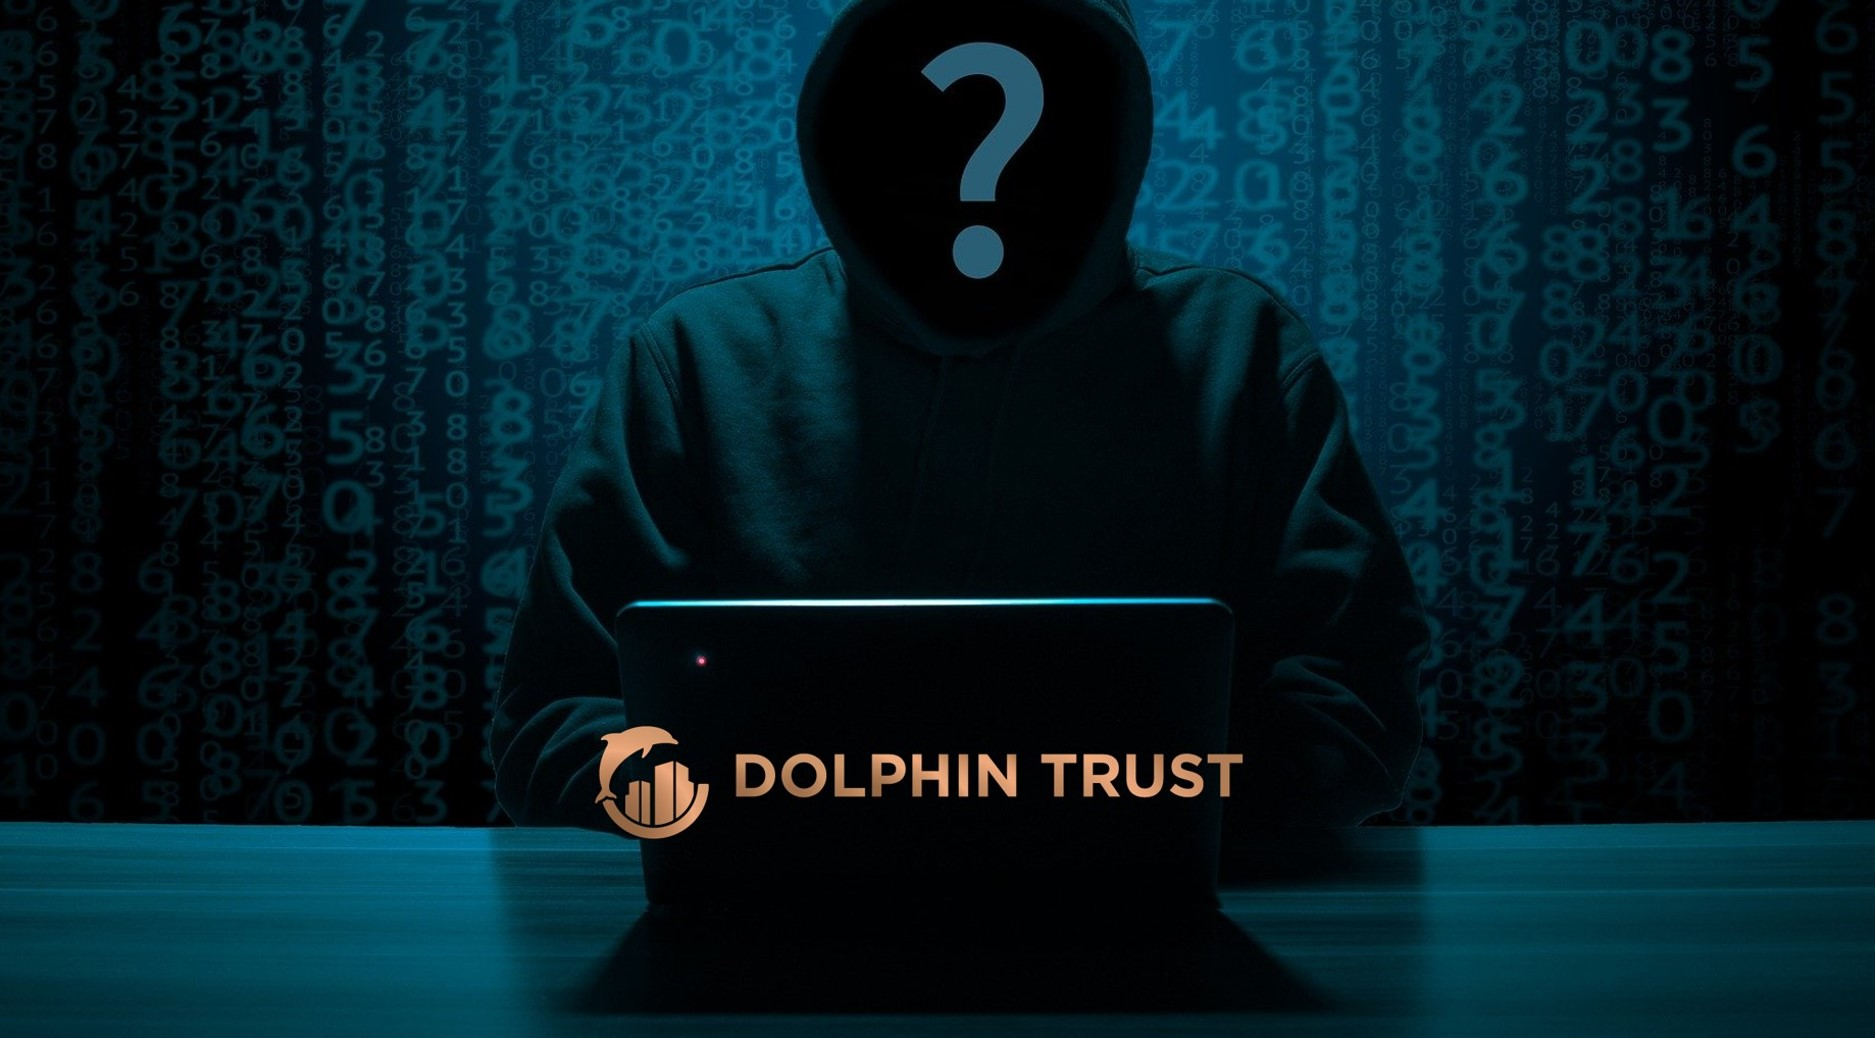 Dolphin Trust Investors told to beware of scams